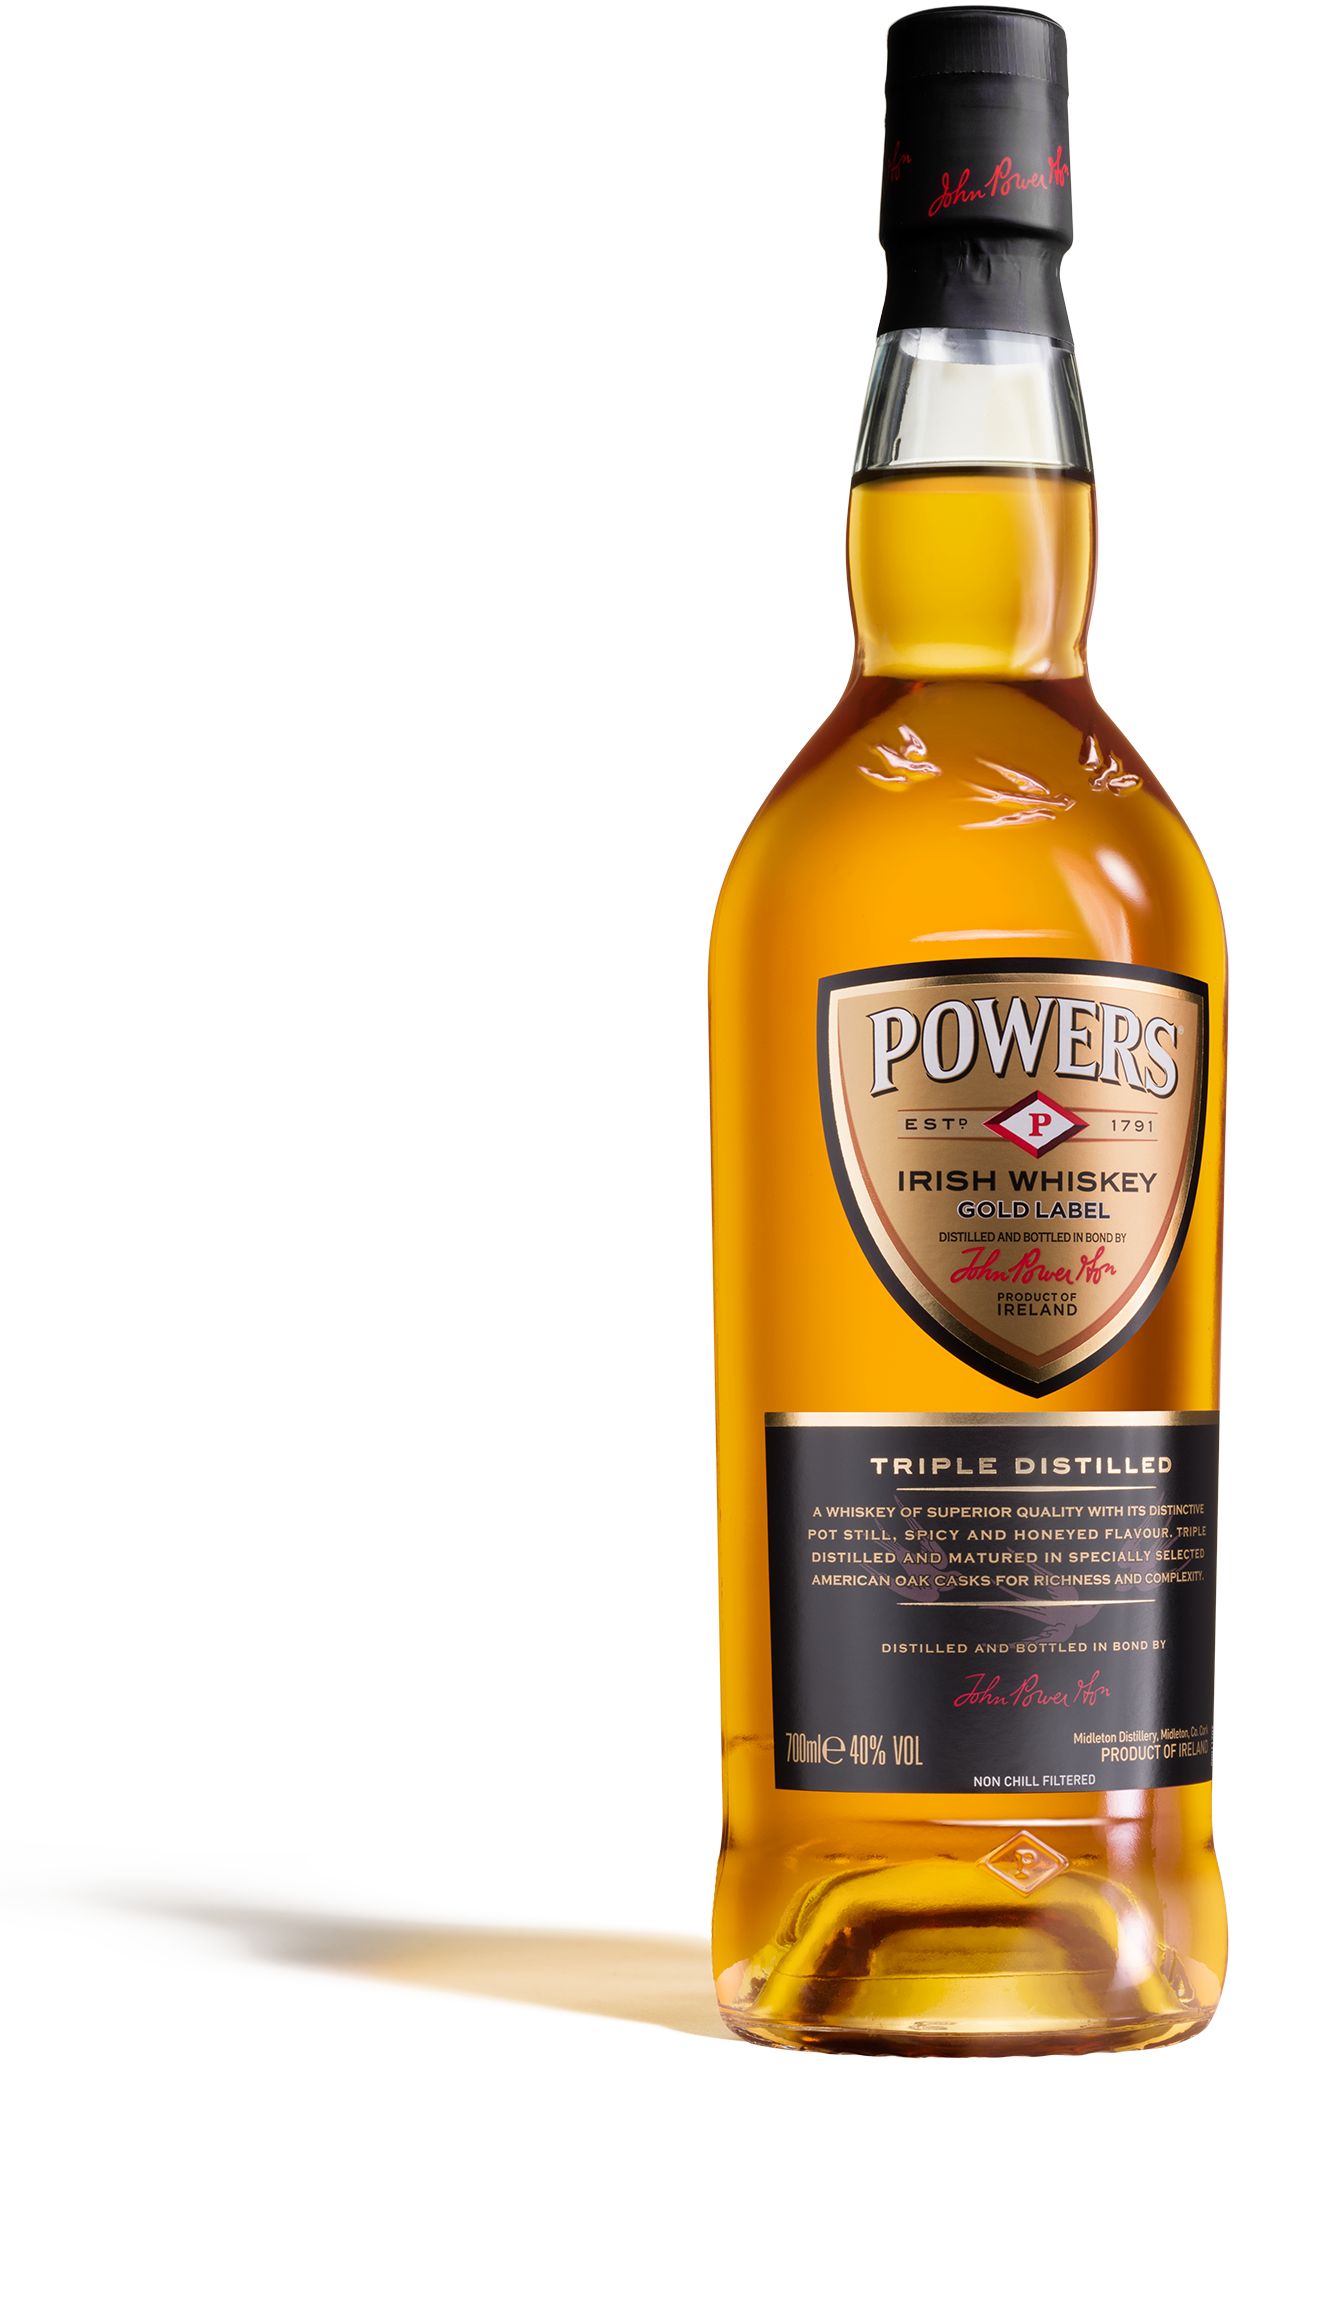 Powers Gold Label